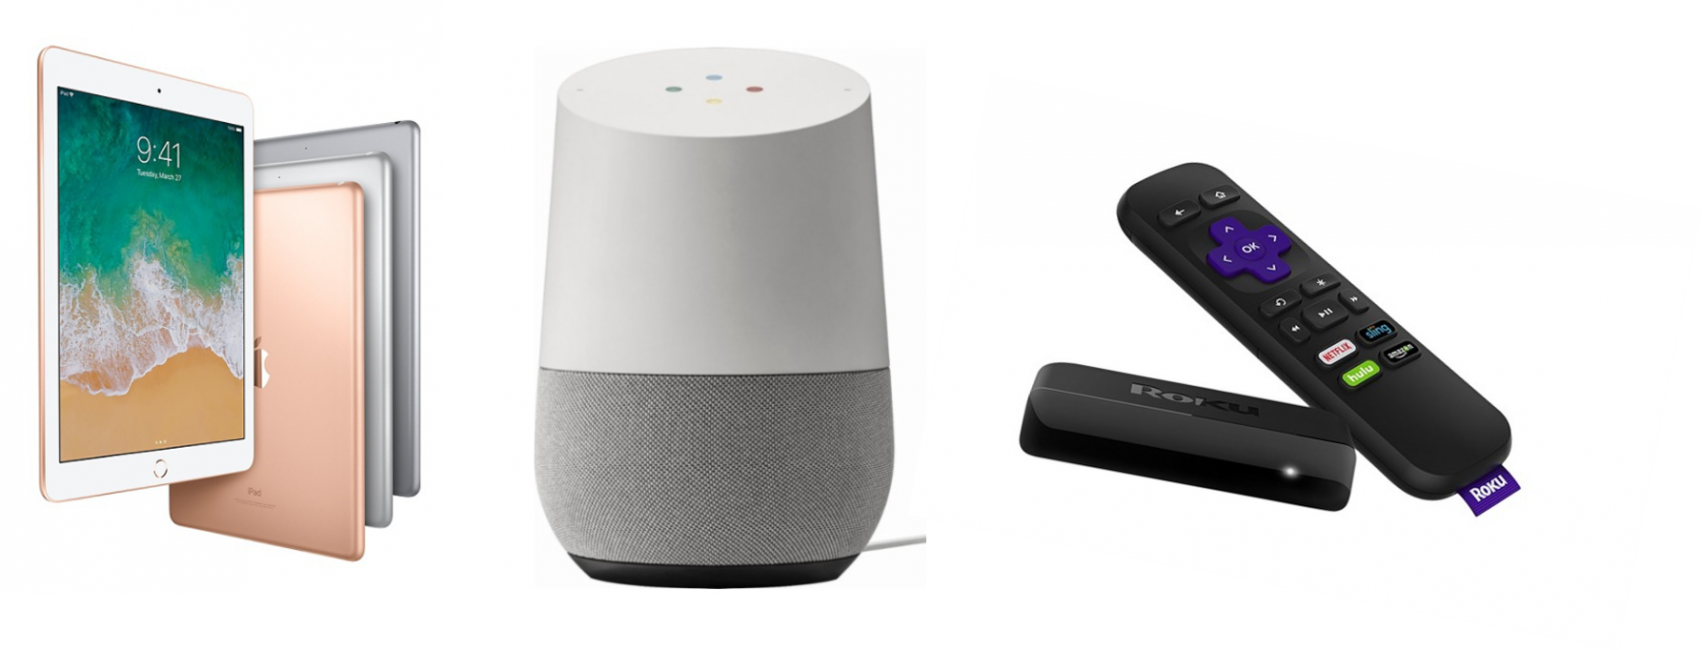 IPad, Google Home, and Roku